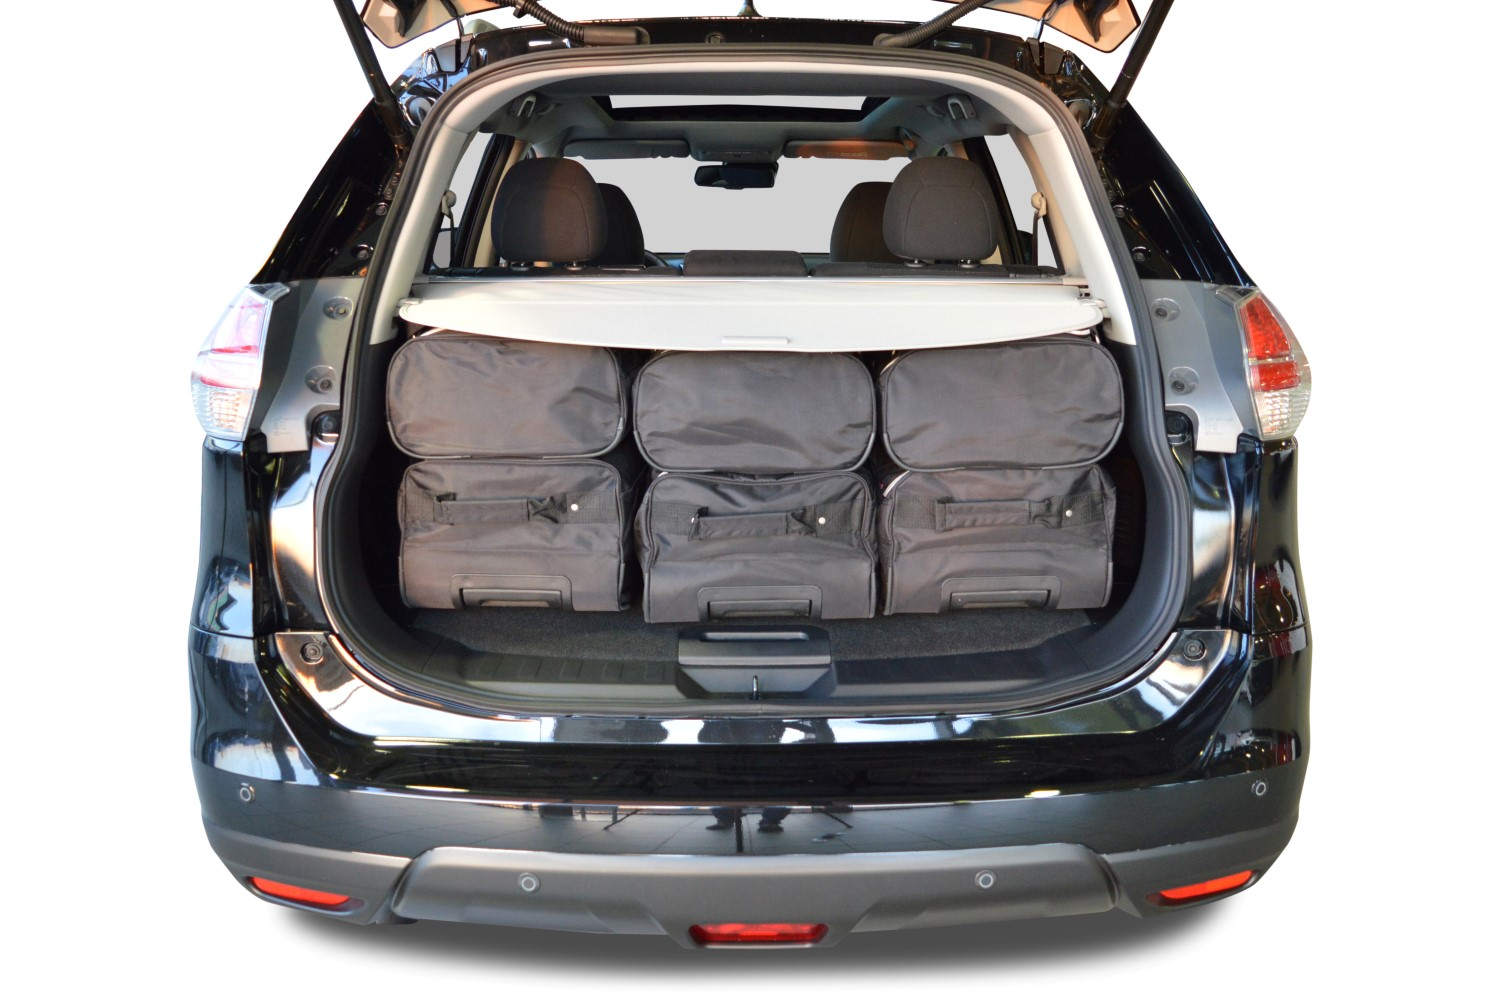 x trail nissan x trail t32 2013 heute car bags reisetaschen. Black Bedroom Furniture Sets. Home Design Ideas